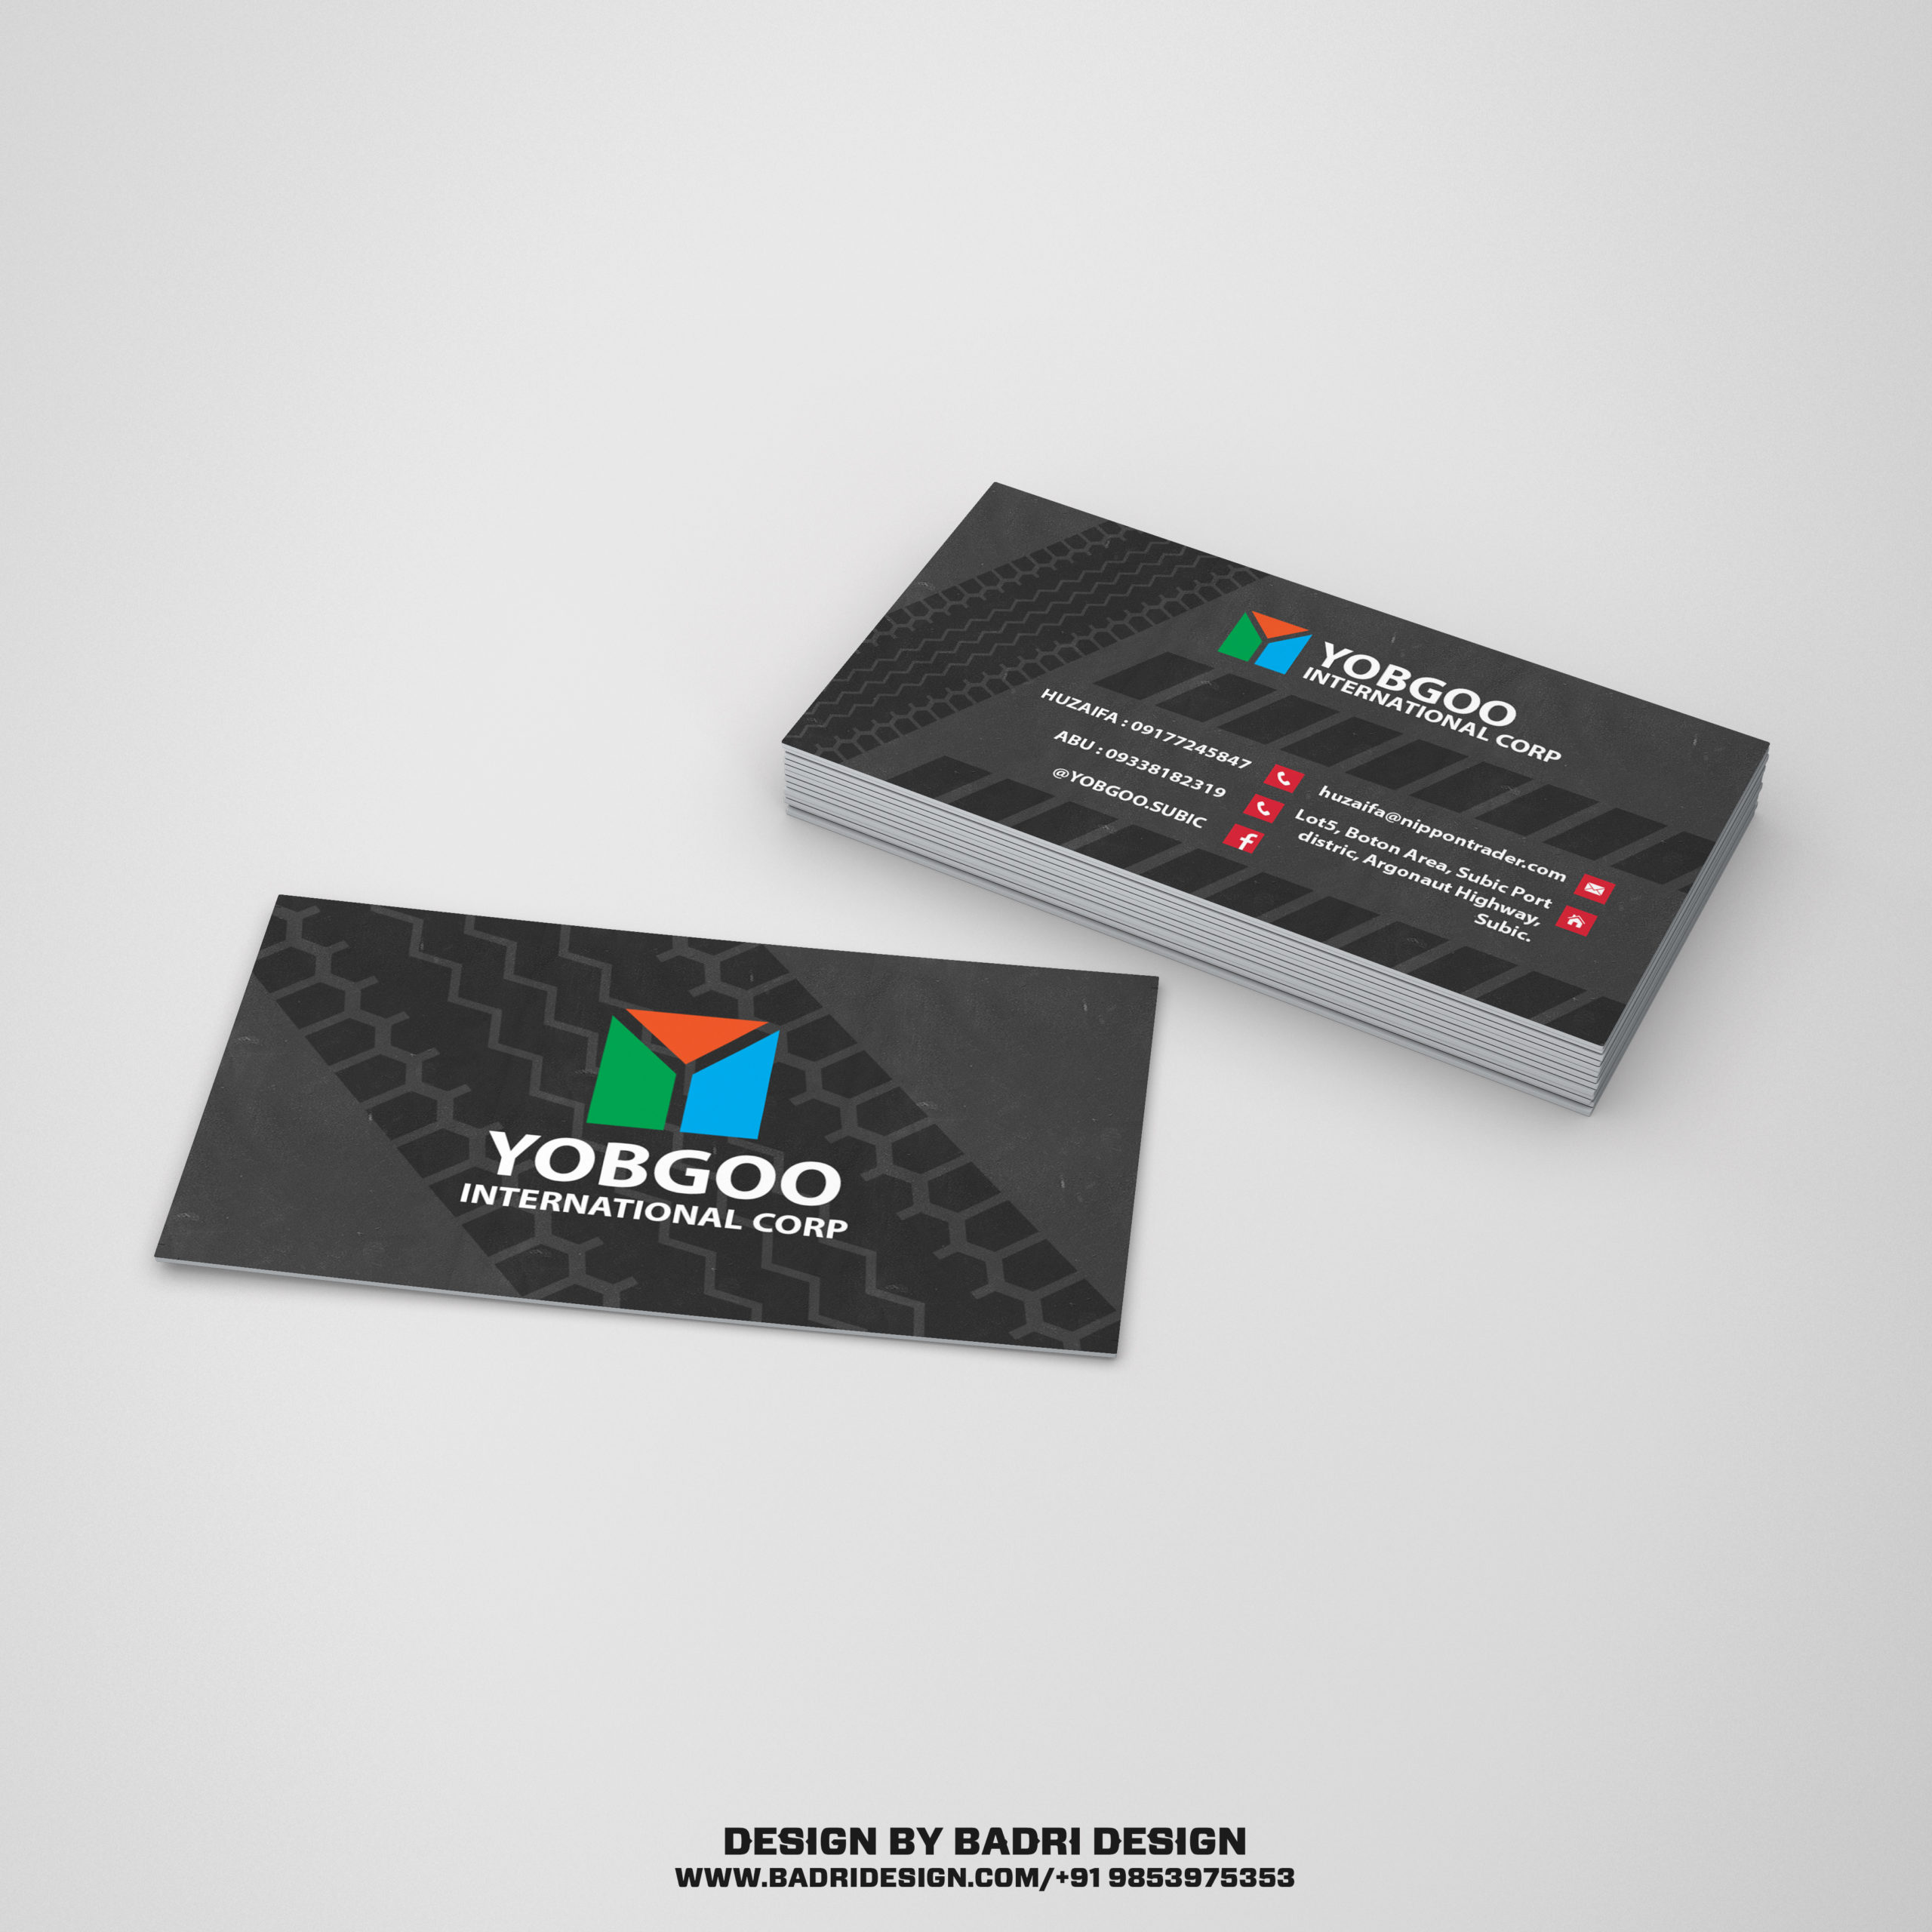 Japanizes truck dealer company business card design by Badri Design